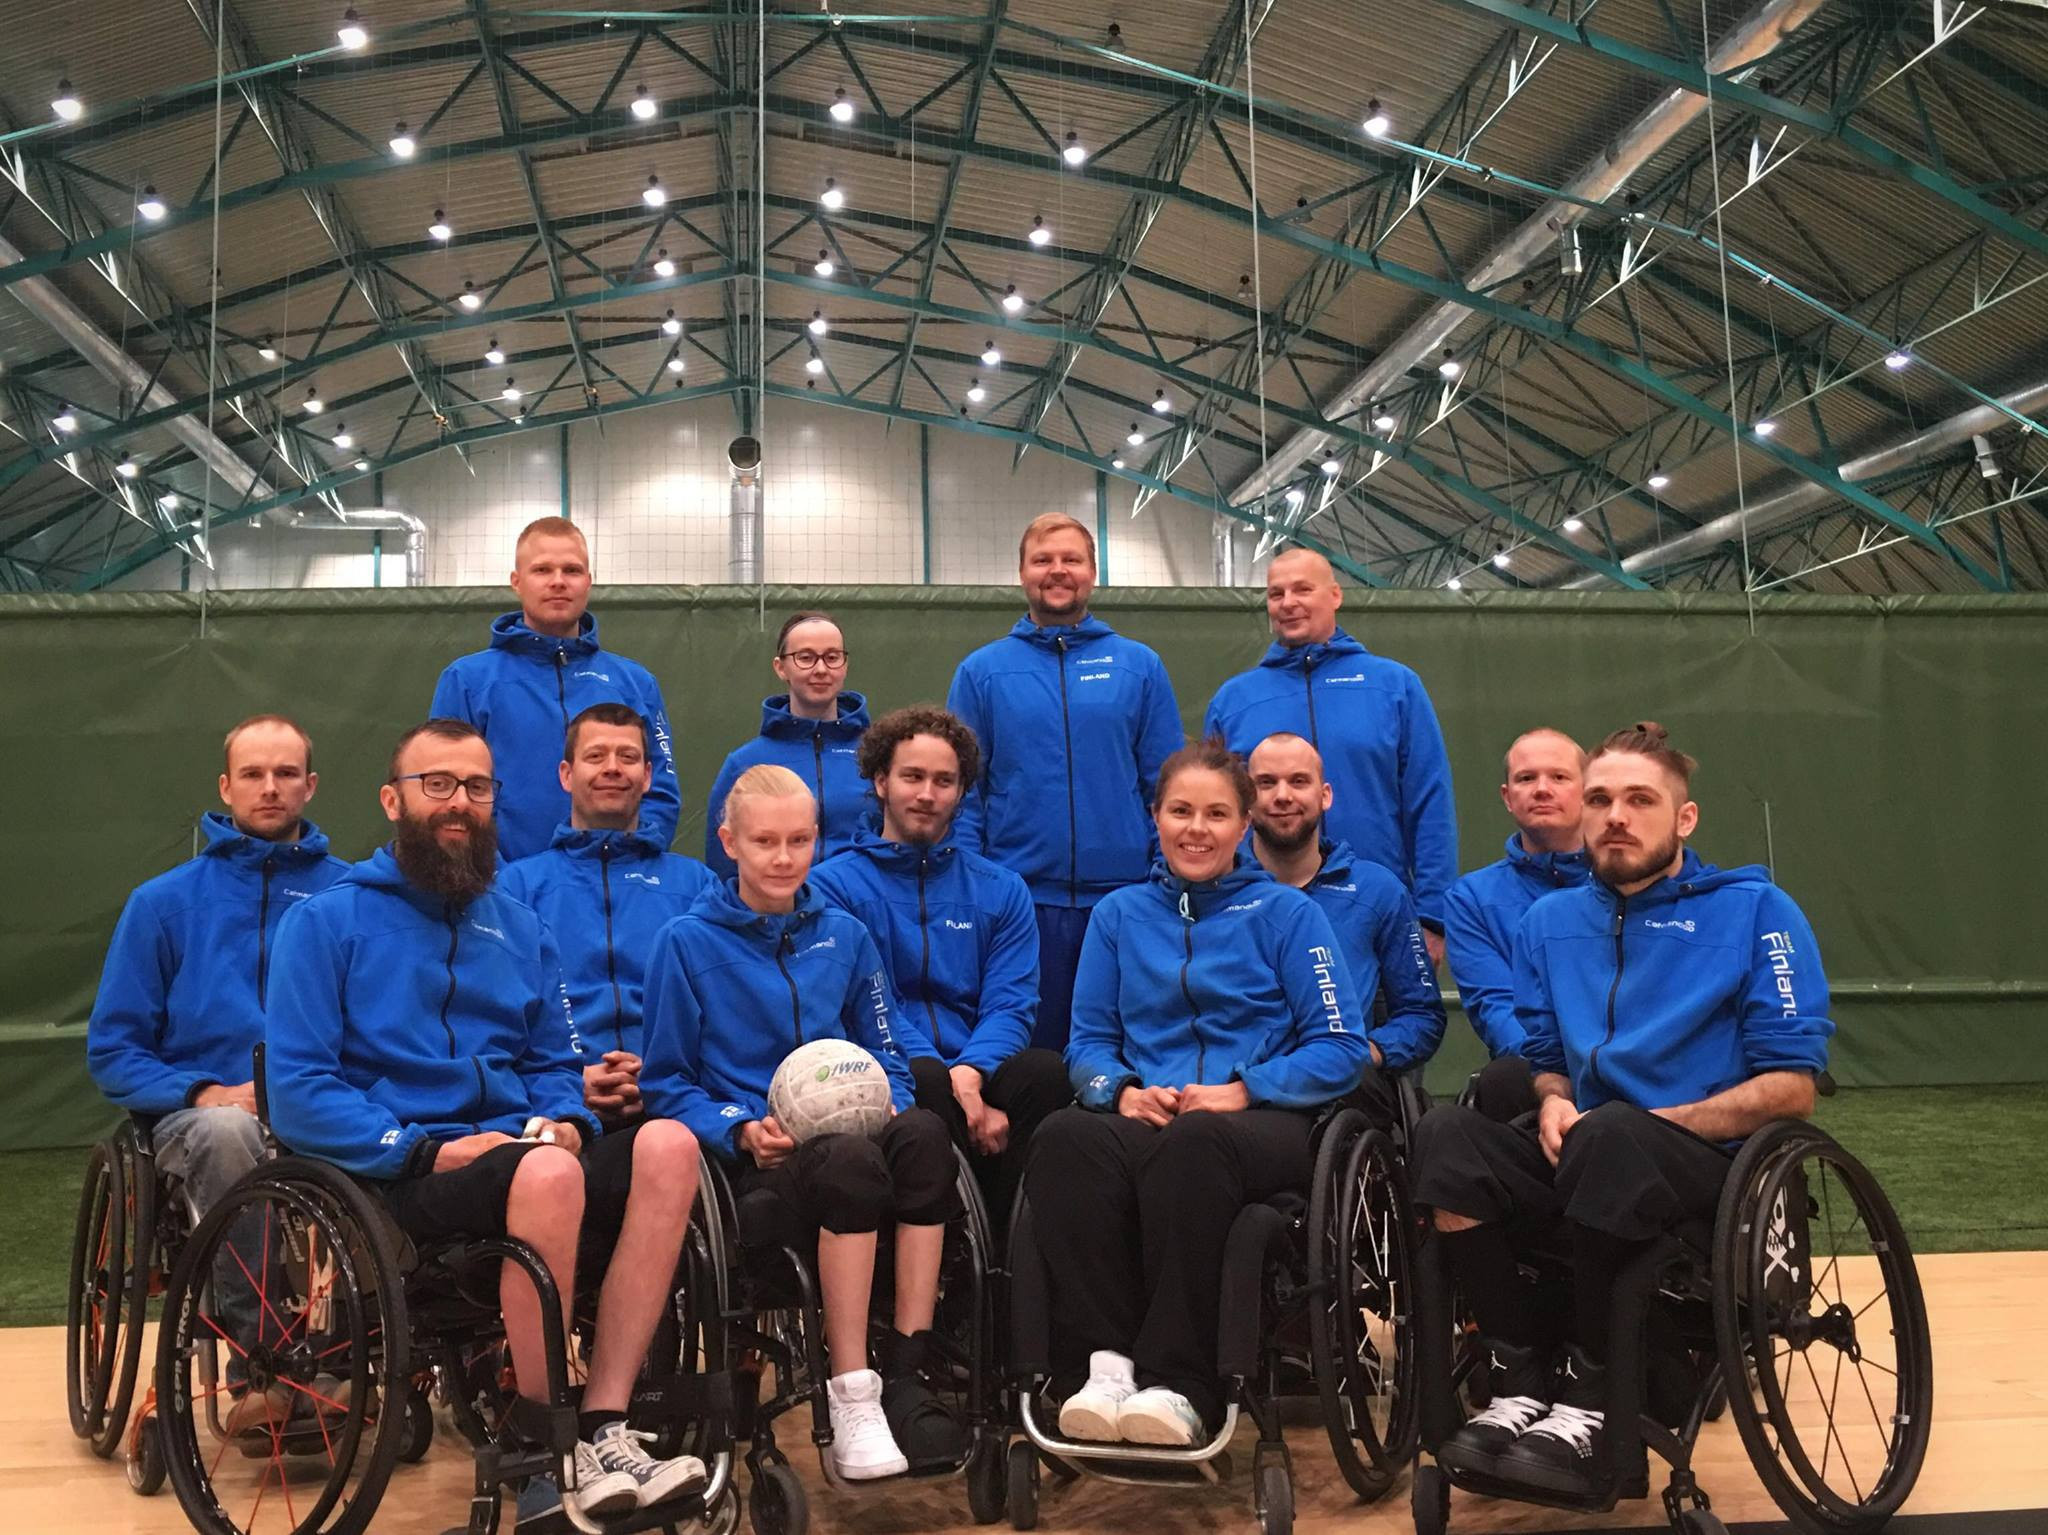 Hosts Finland are 11th in the current IWRF world rankings ©Finnish Wheelchair Rugby